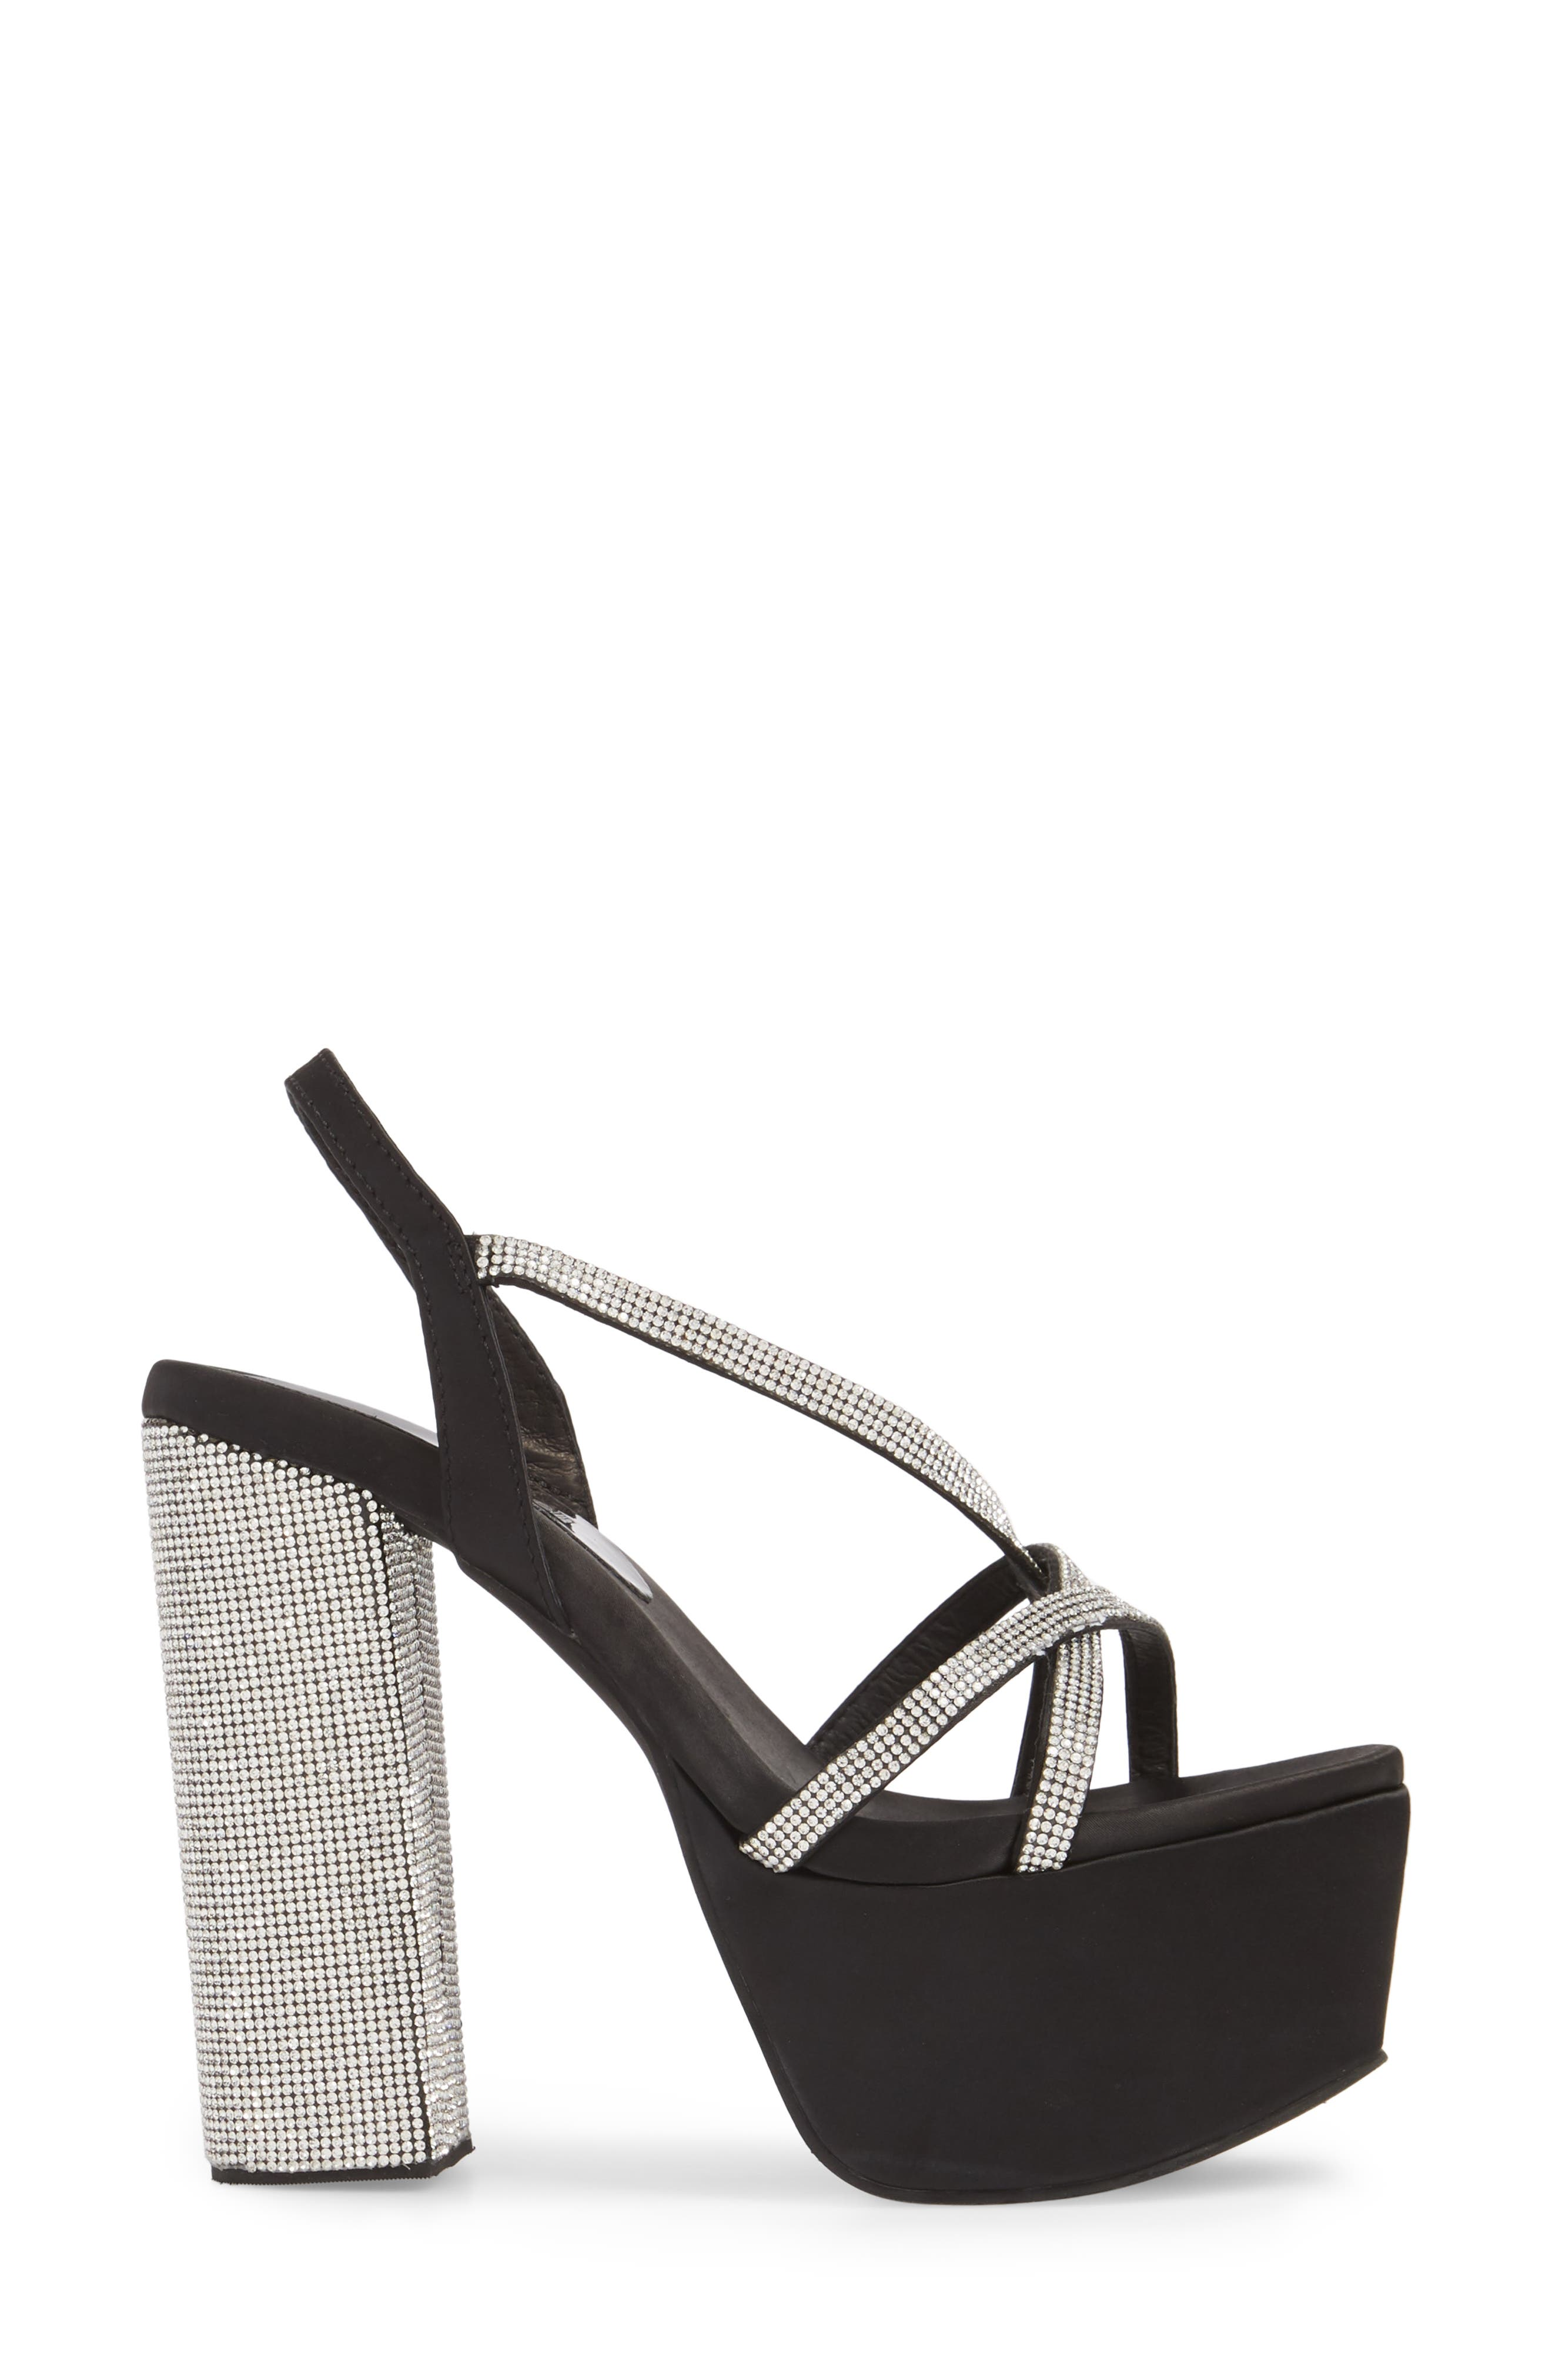 Upset Embellished Platform Sandal,                             Alternate thumbnail 3, color,                             BLACK SATIN/ SILVER